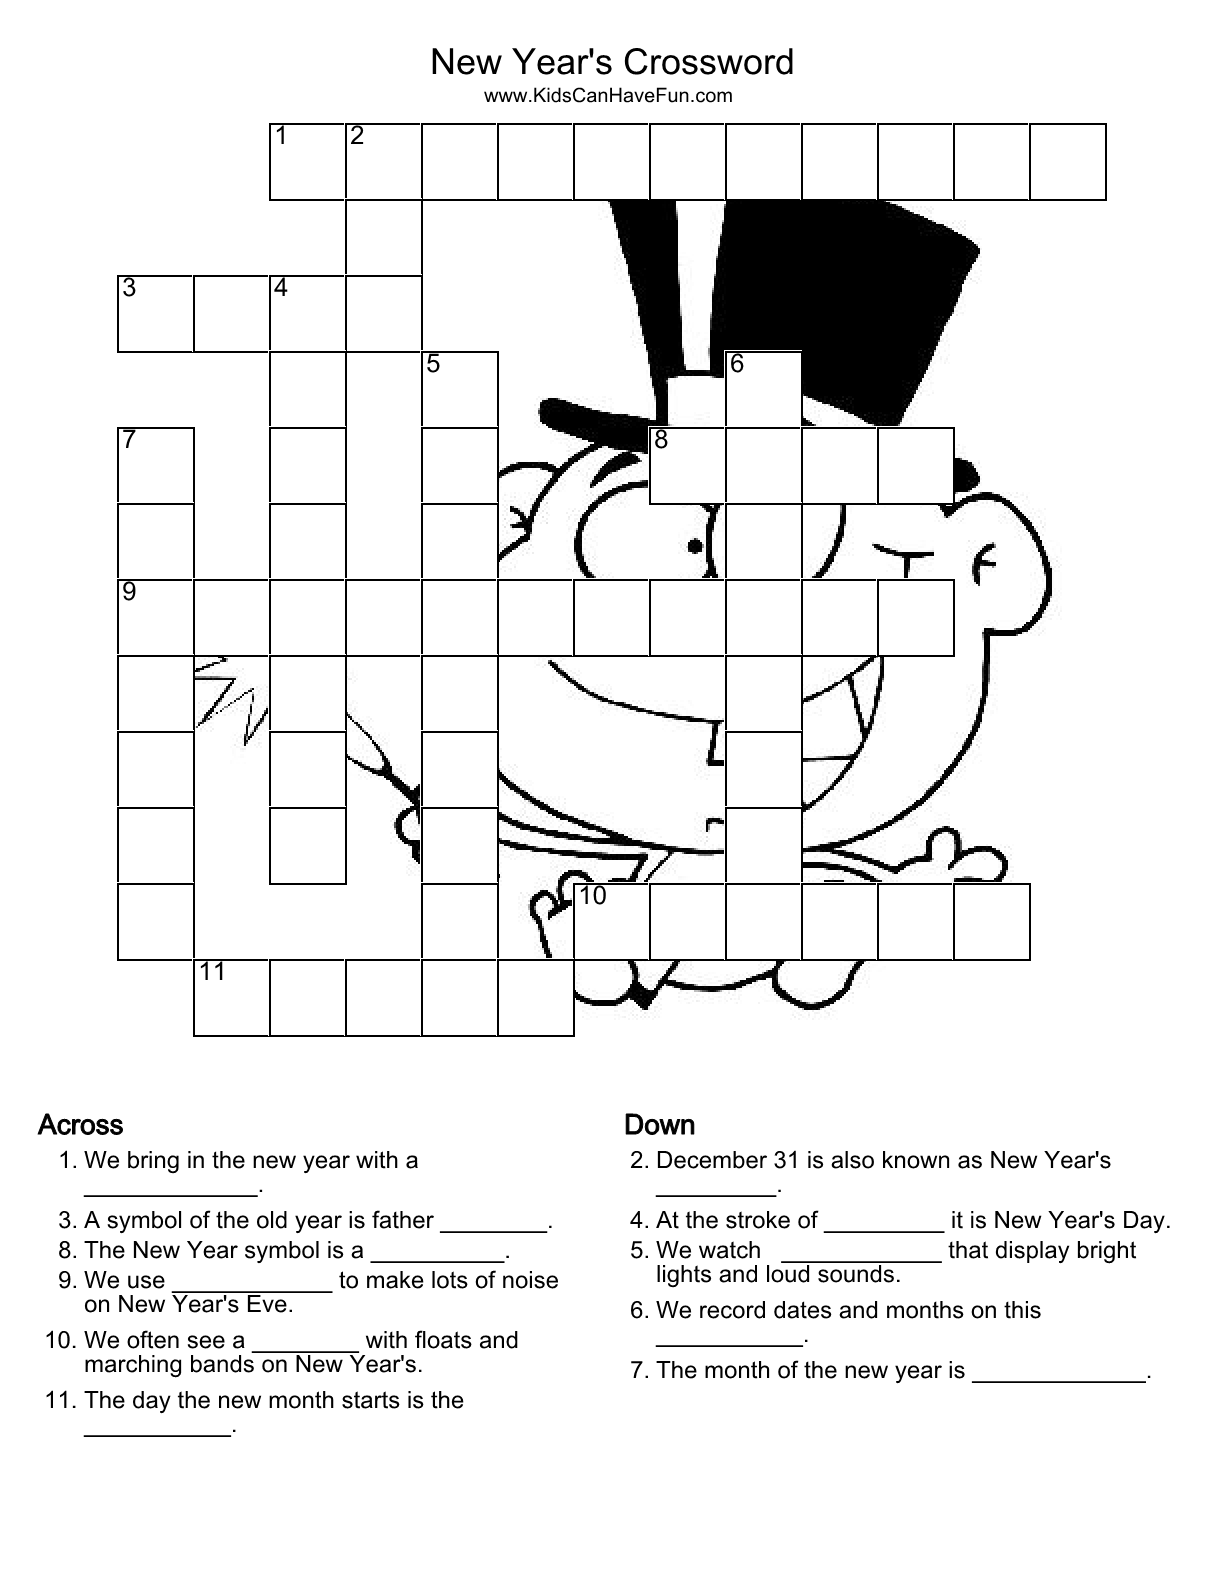 New years crossword puzzle httpkidscanhavefun fun crossword puzzles for kids that are easy to do and help make learning fun kids can choose from educational holiday and online crosswords biocorpaavc